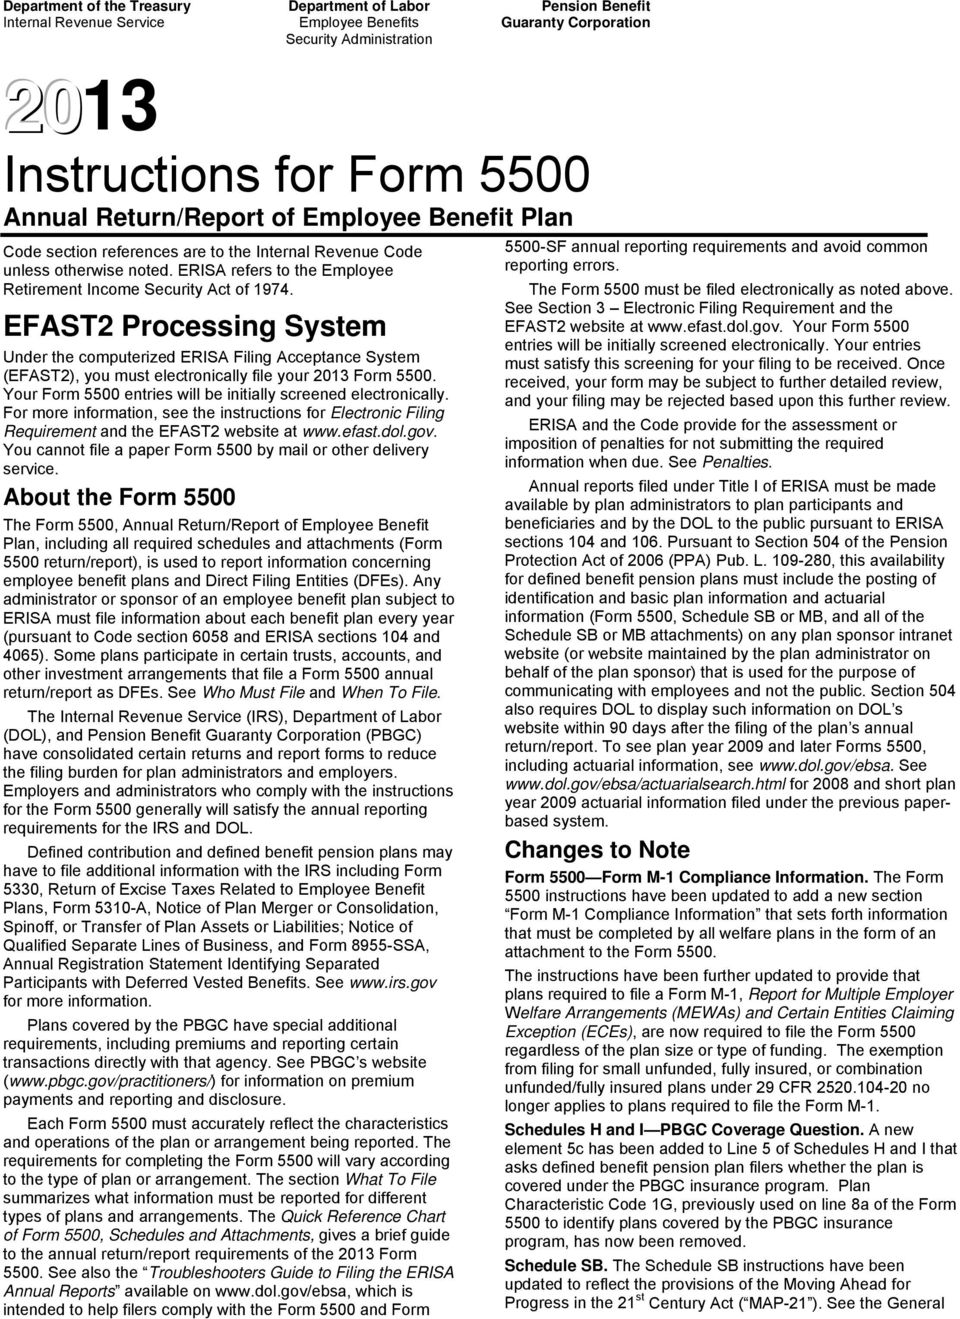 Instructions for Form 5500 Annual Return/Report of Employee Benefit Plan - PDF